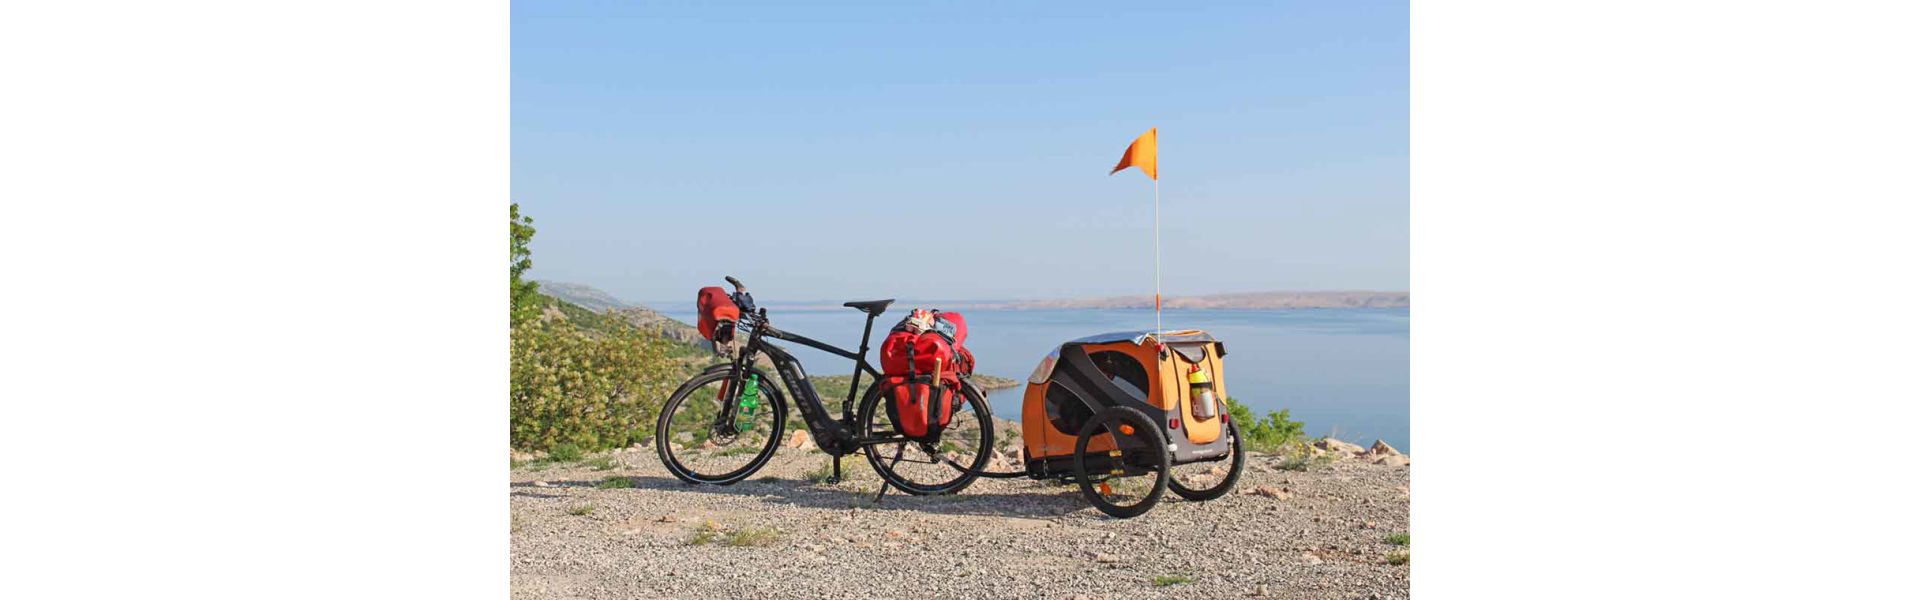 Tips to Extend E-Bike Battery Life While Traveling | Giant